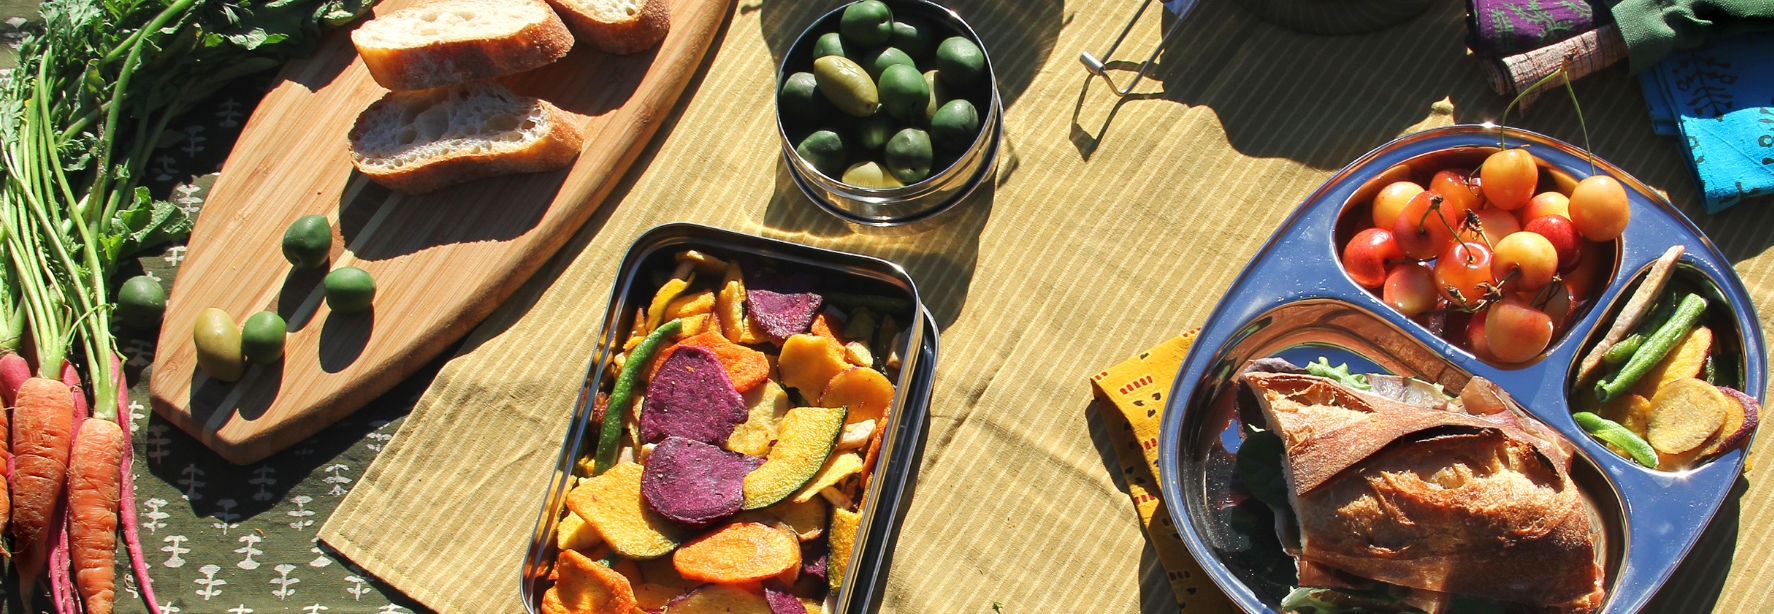 Stainless steel containers and wood serving board with fruits, veggies, and a sandwich laying on colorful picnic blankets.